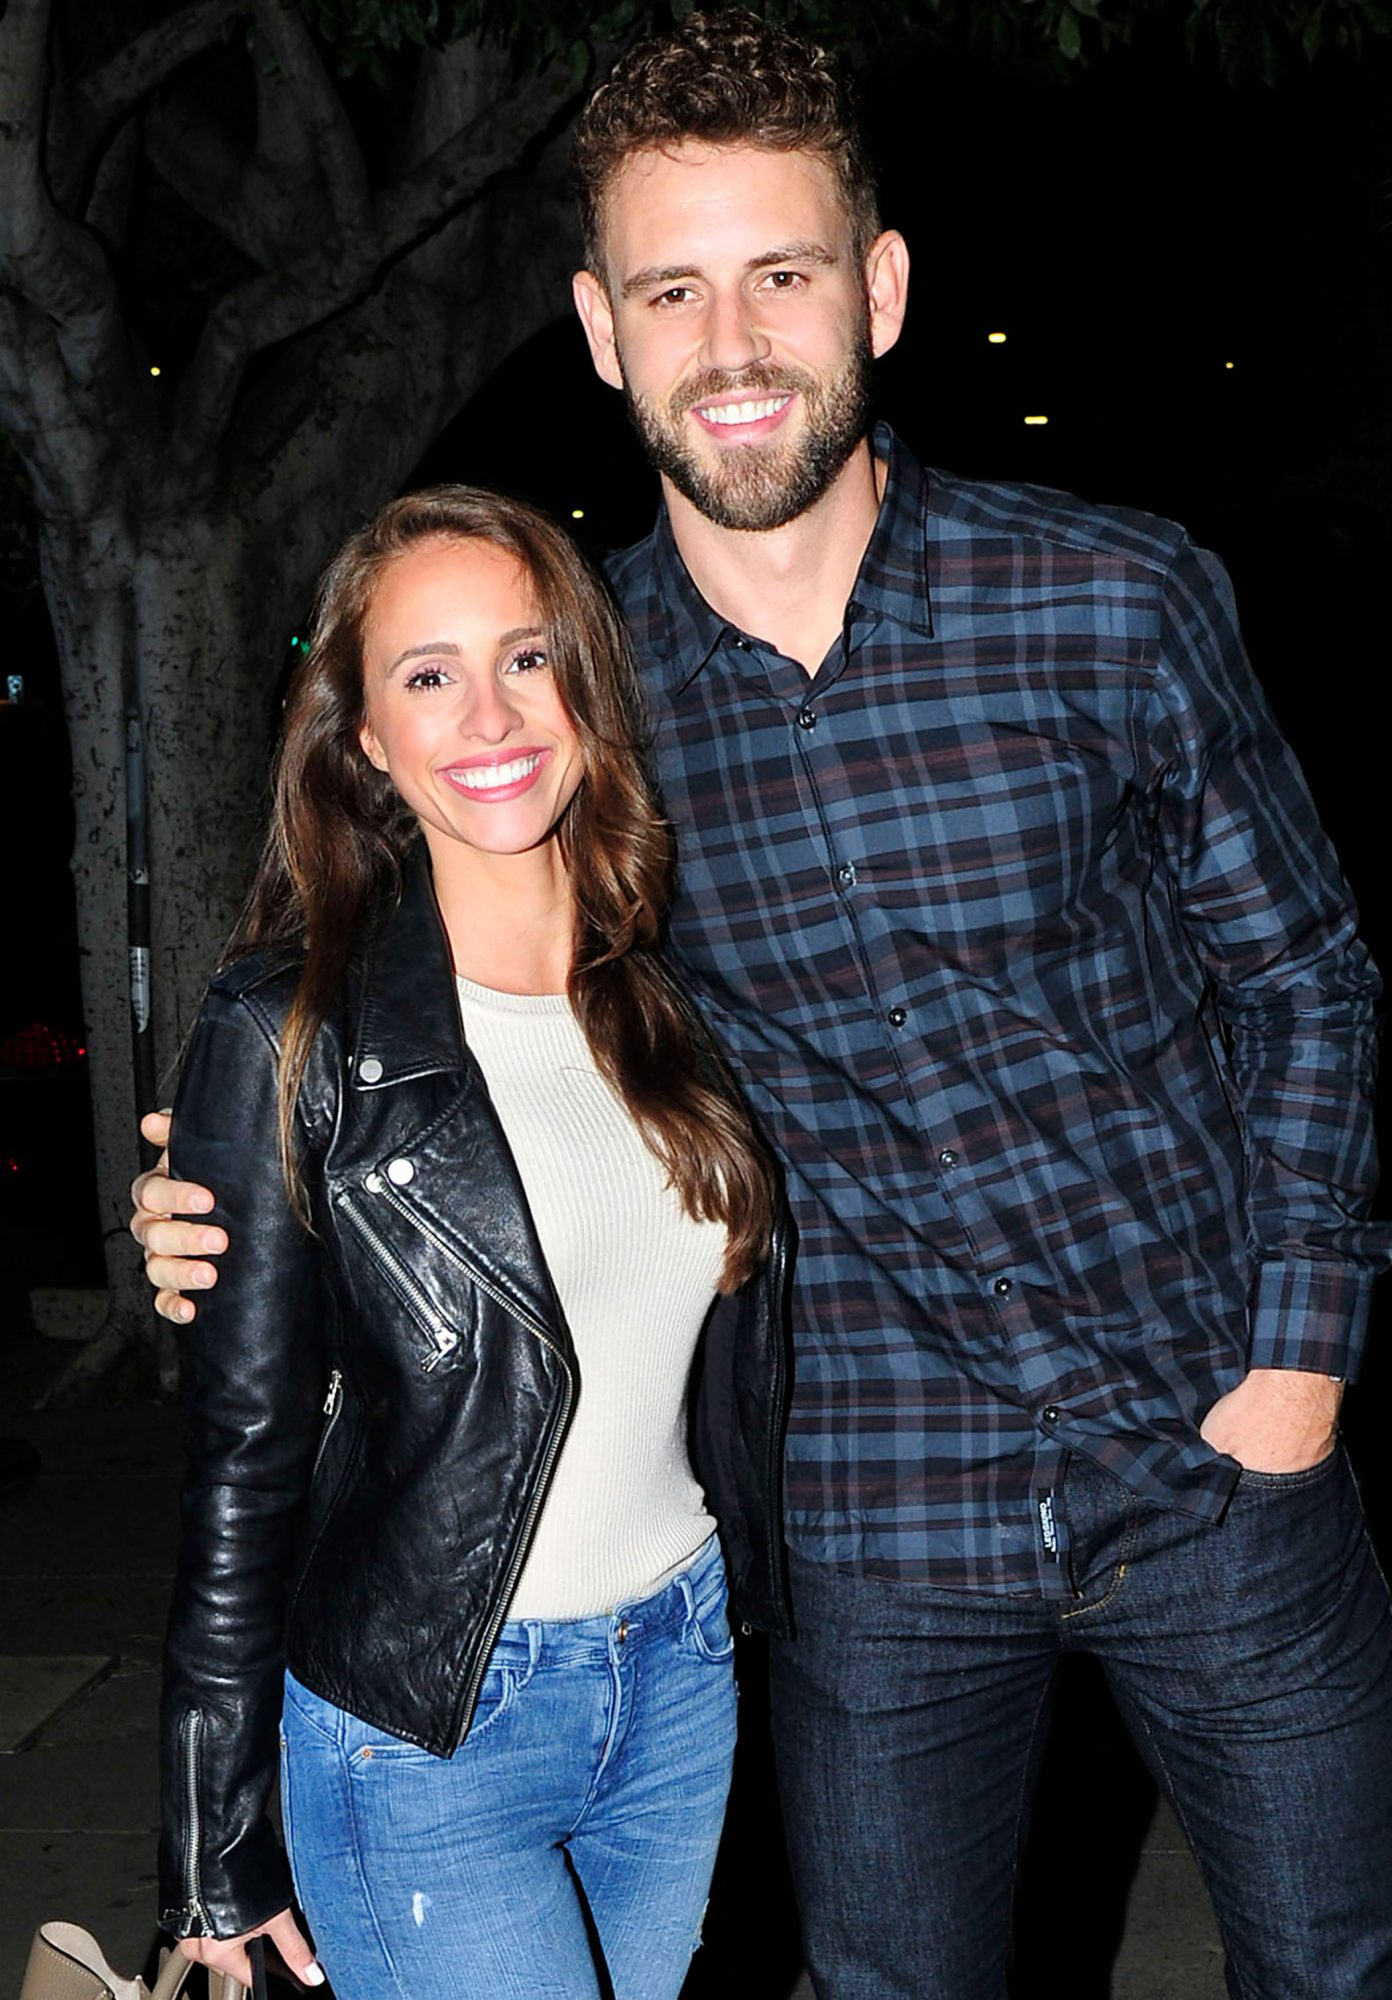 Nick Viall and Vanessa Grimaldi On A Dinner Date